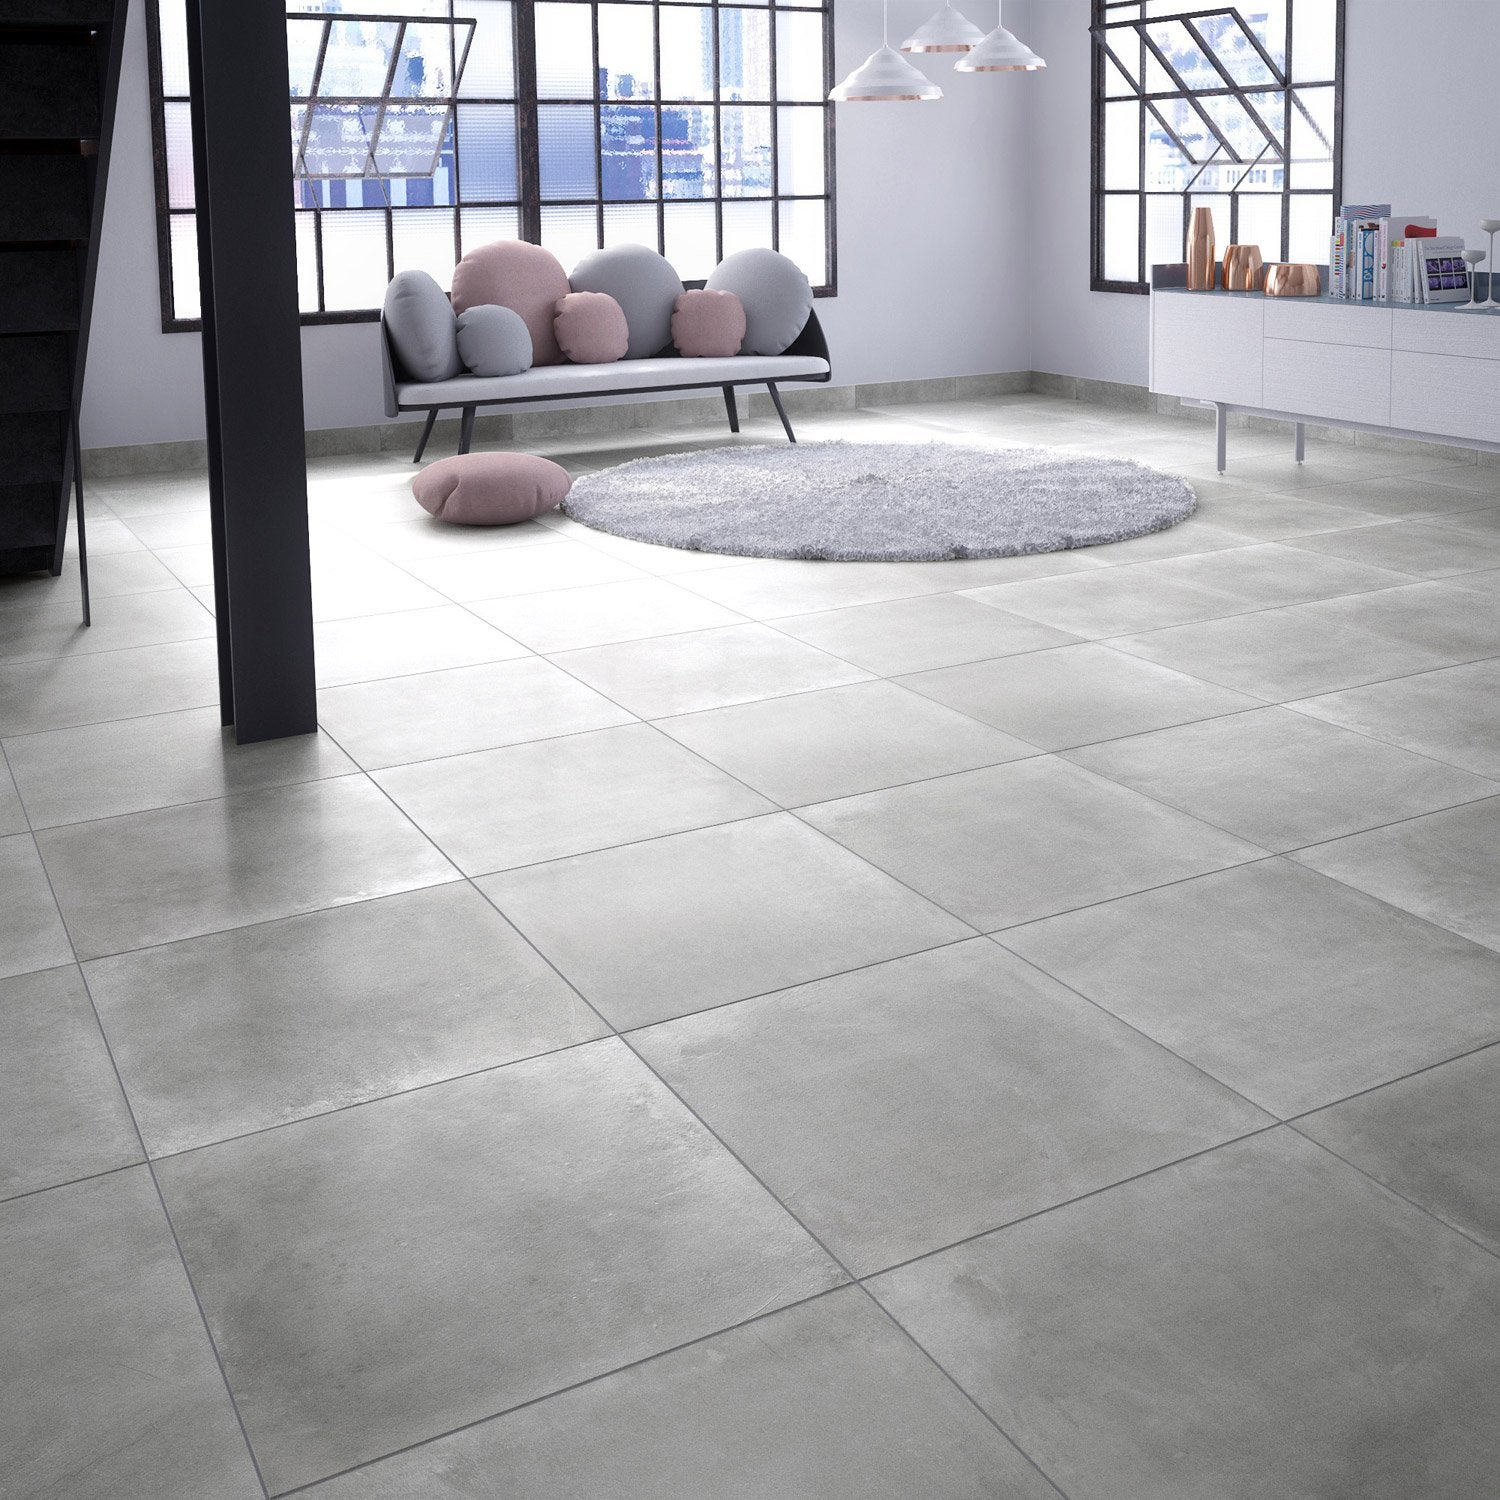 Awesome carrelage sol 60x60 gris photos for Carrelage orange sol